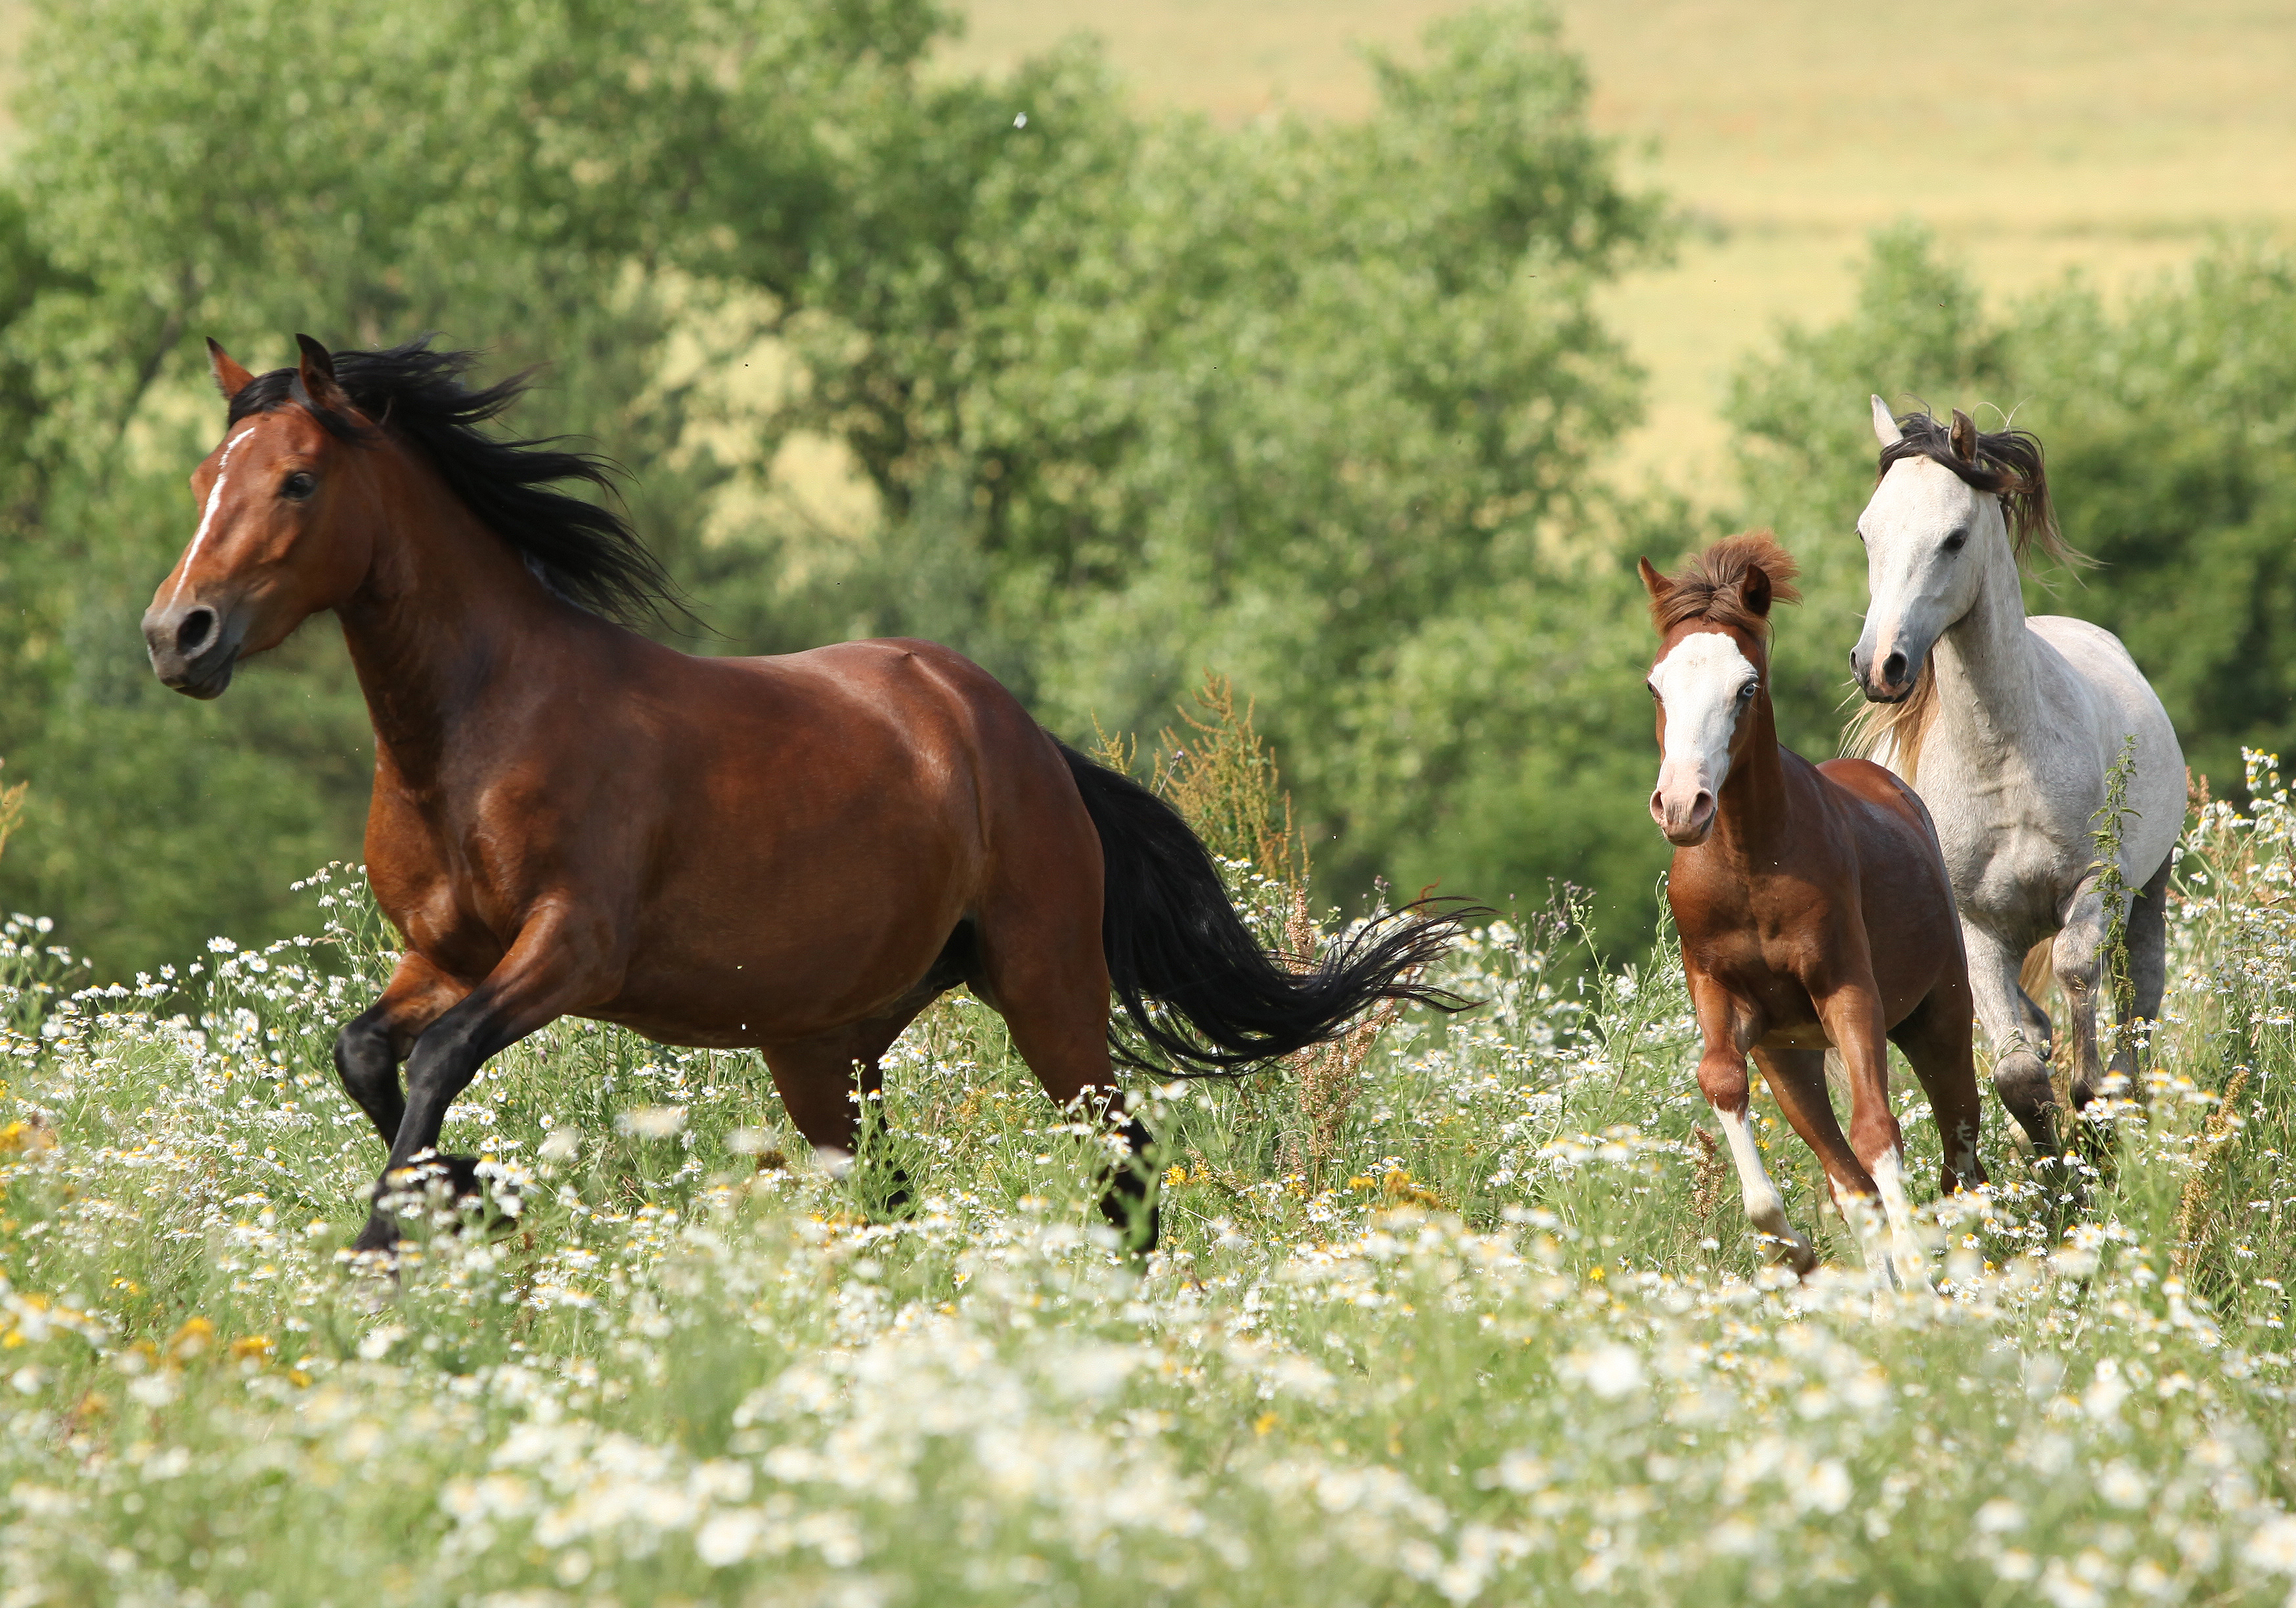 12 Important Vitamins and Minerals for Horses